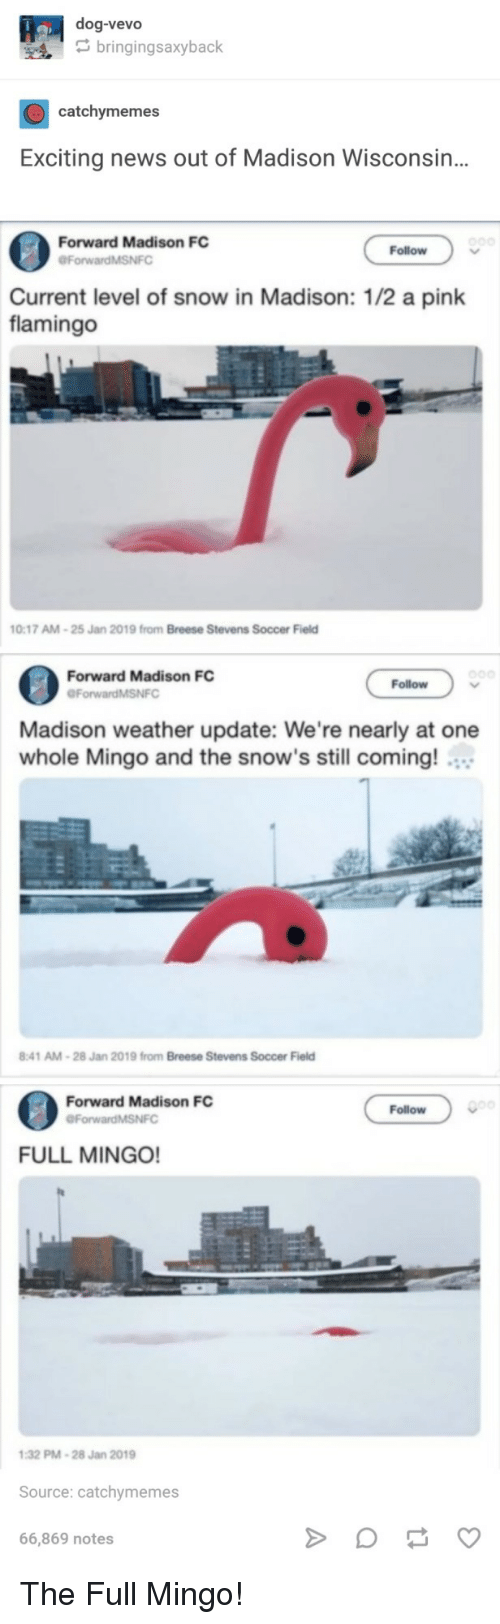 a pink: dog-vevo  bringingsaxyback  catchymemes  Exciting news out of Madison Wisconsin..  Forward Madison FC  ForwardMSNFO  Follow  Current level of snow in Madison: 1/2 a pink  flamingo  0:17 AM-25 Jan  2019 from Breese Stevens  Soccer Field  Forward Madison FC  Follow  Madison weather update: We're nearly at one  whole Mingo and the snow's still coming!  :41 AM-28 Jan 2019 from Breese Stevens Soccer Field  Forward Madison FC  Follow  ForwardMSNFC  FULL MINGO!  32 PM-28 Jan 2019  Source: catchymemes  66,869 notes The Full Mingo!